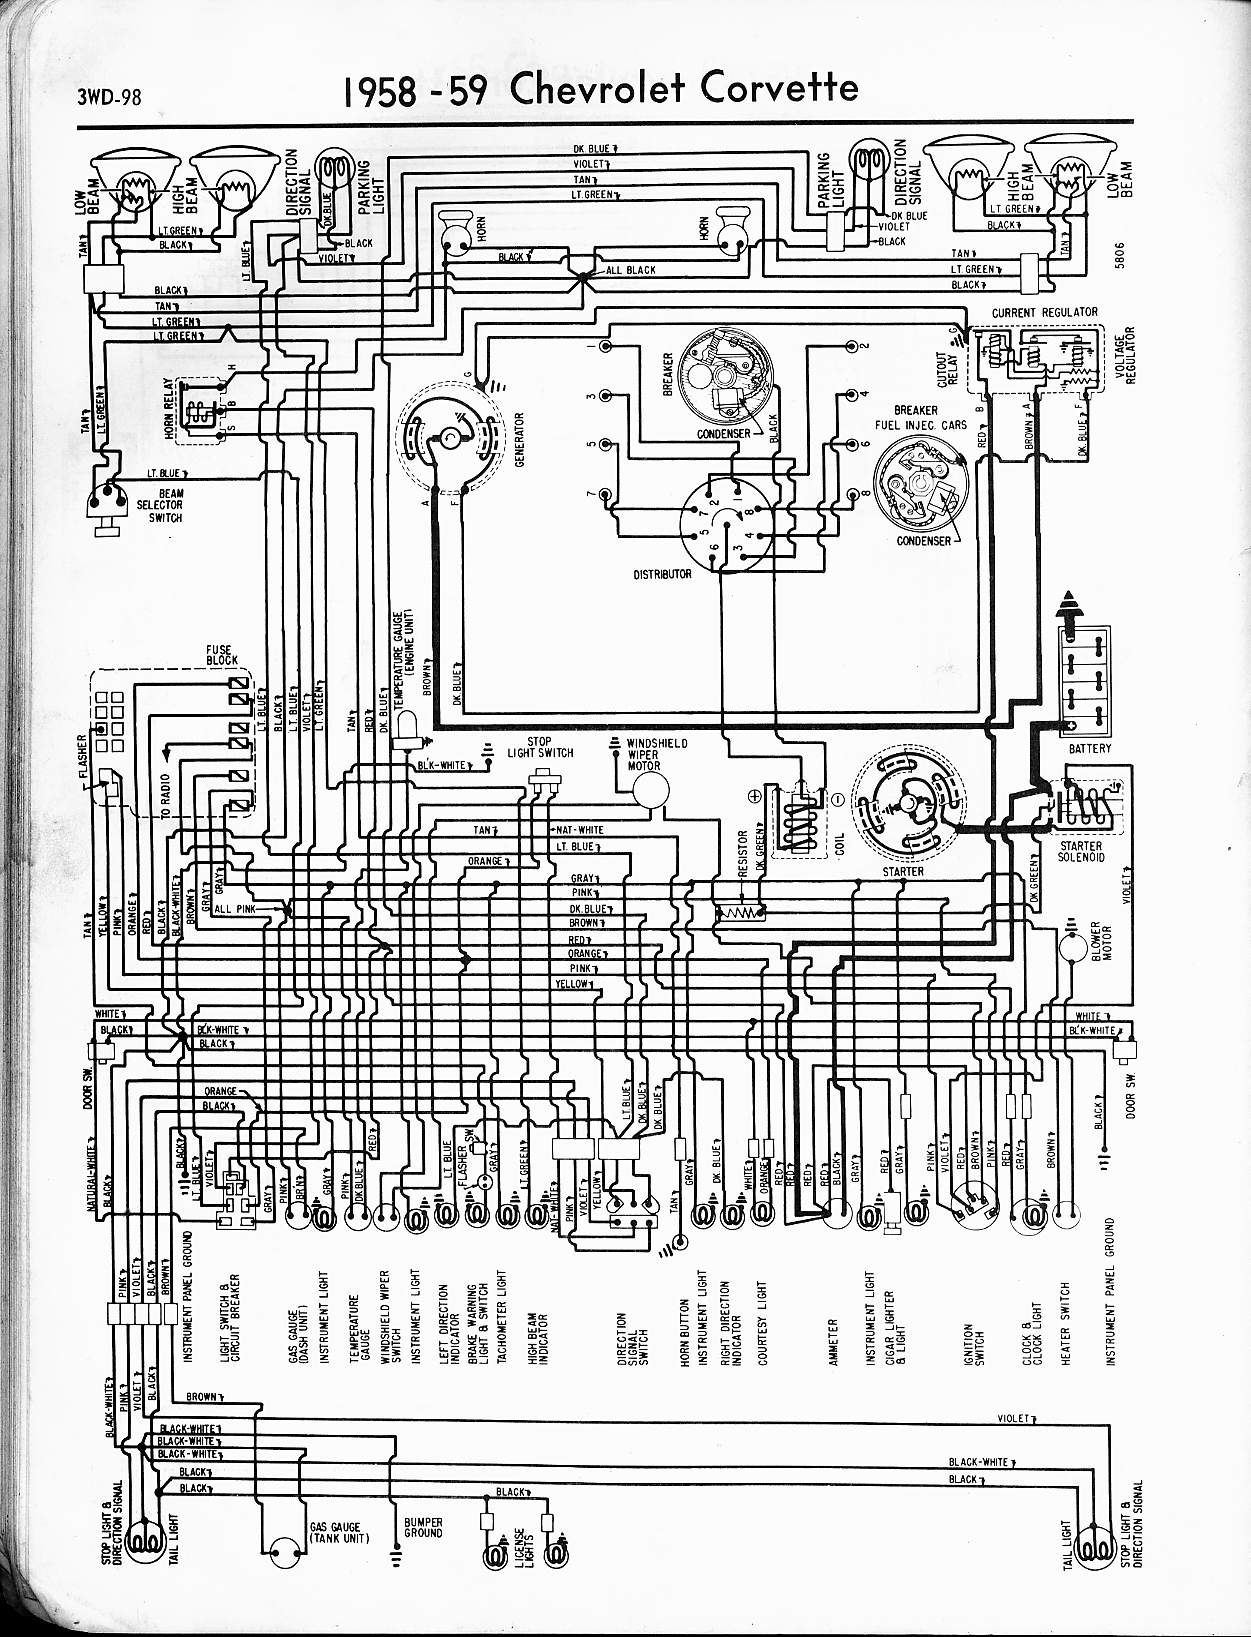 Mitsubishi Montero Sport Vacuum Diagram Free Vehicle Wiring Diagrams 2001 1960 Corvette Engine House Symbols U2022 Rh Maxturner Co